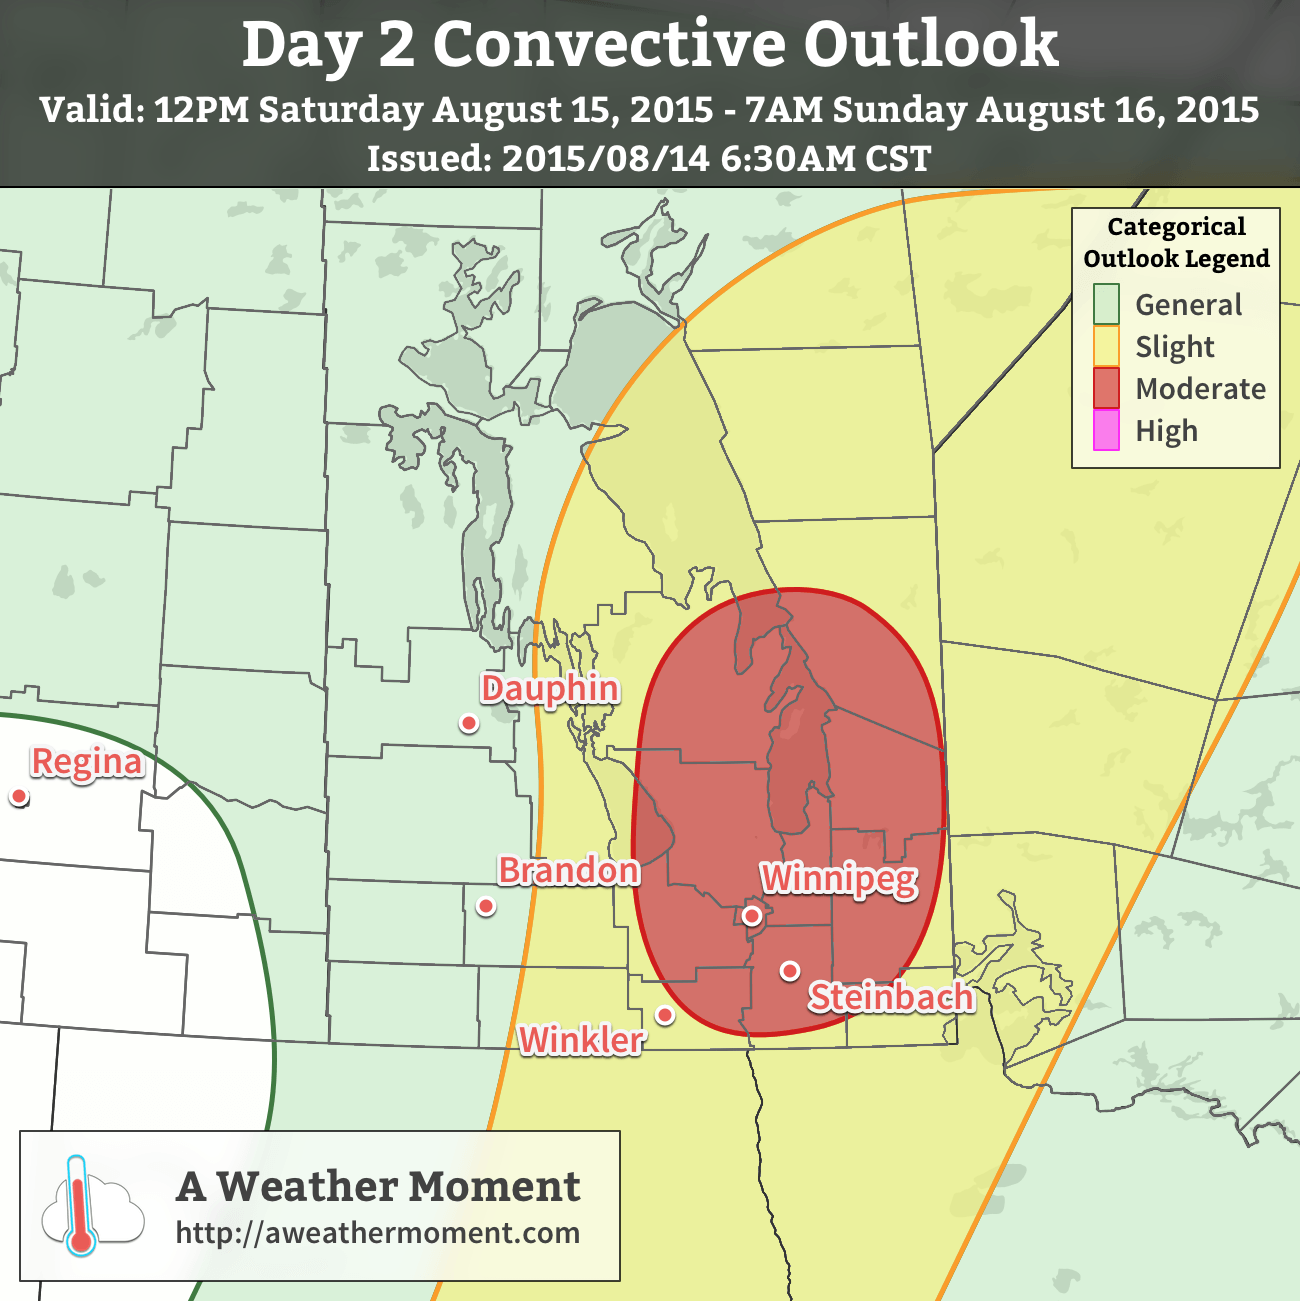 AWM Day 2 Convective Outlook – Saturday August 15, 2015 to Sunday August 16, 2015